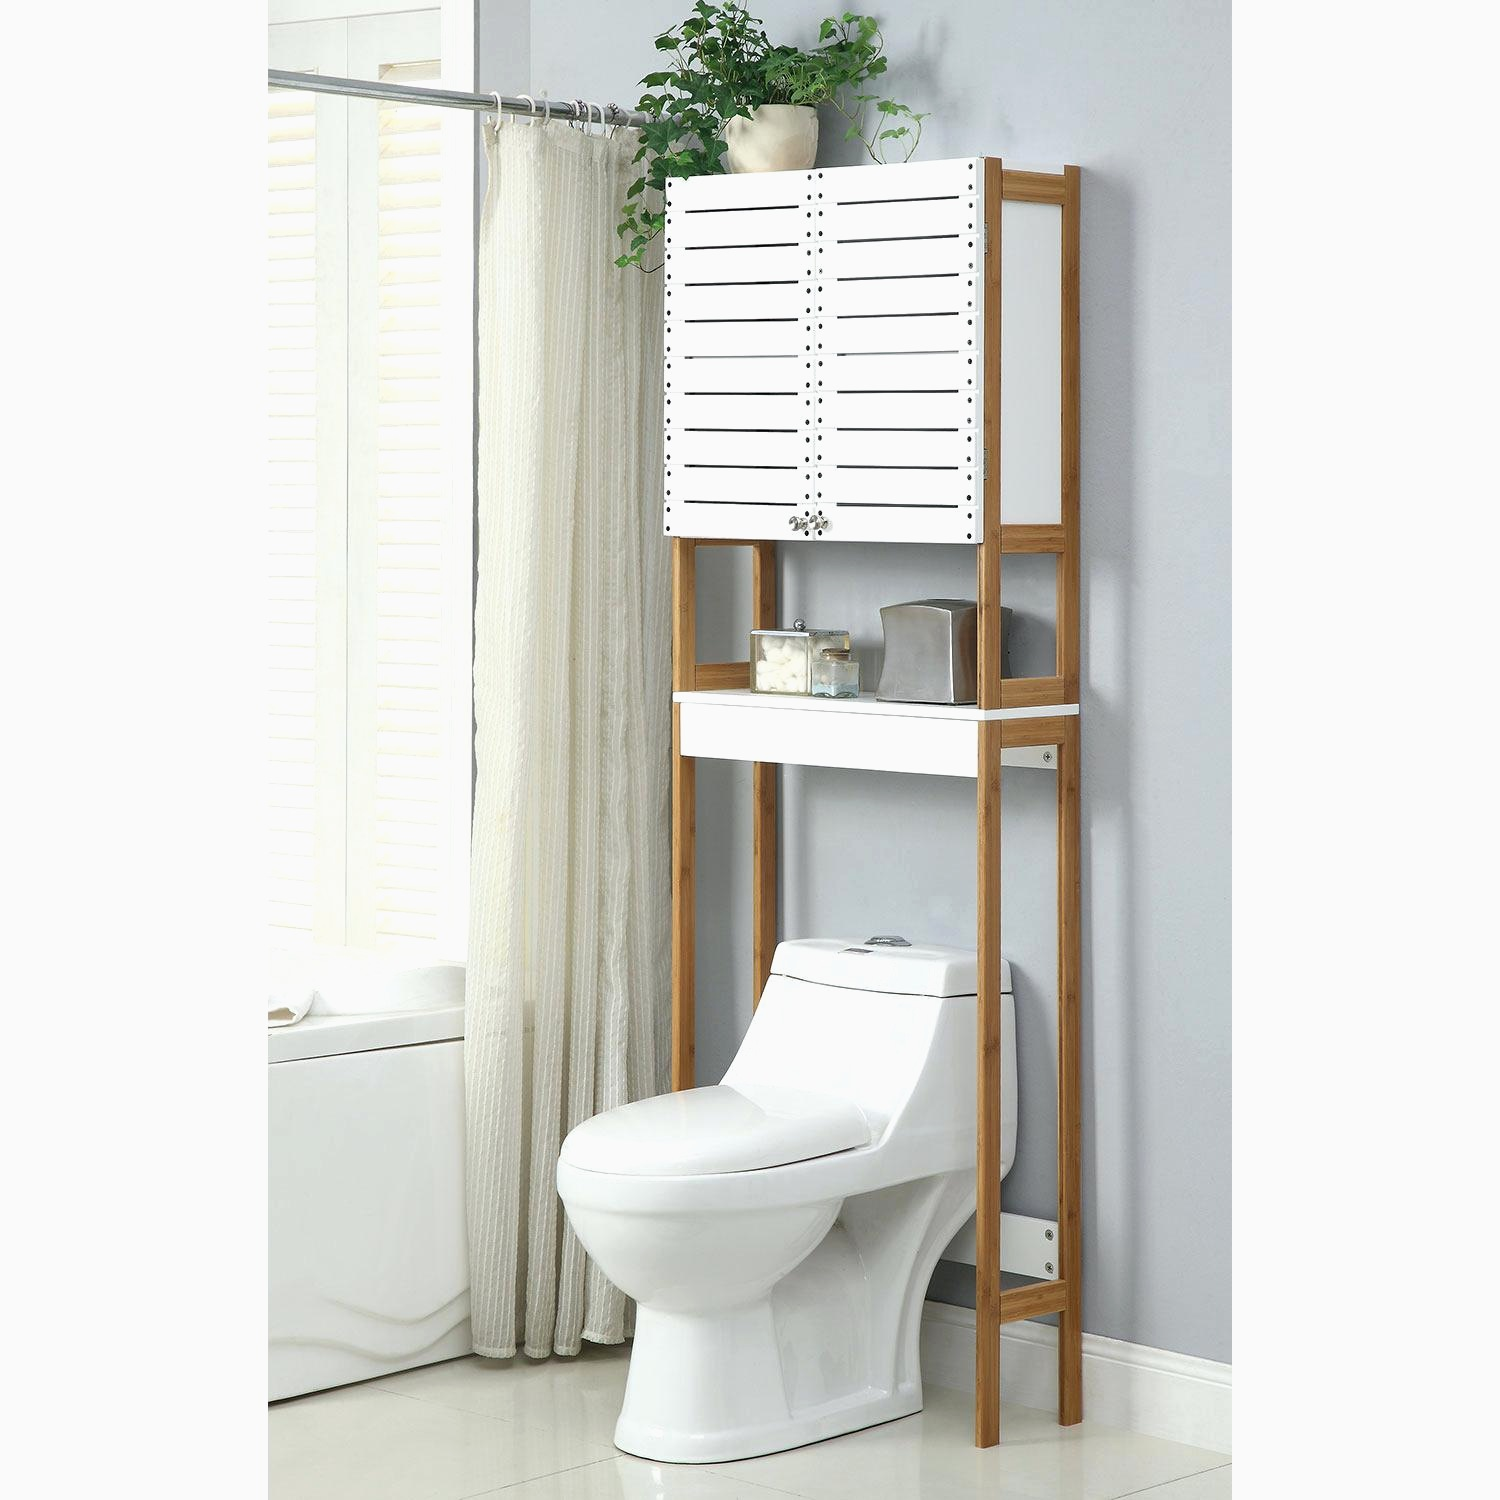 small bathroom accent tables luxury table for unique amazing tall ideas ikea toy organizer with bins drum chairs back glass top nesting antique pine coffee sun shades decks